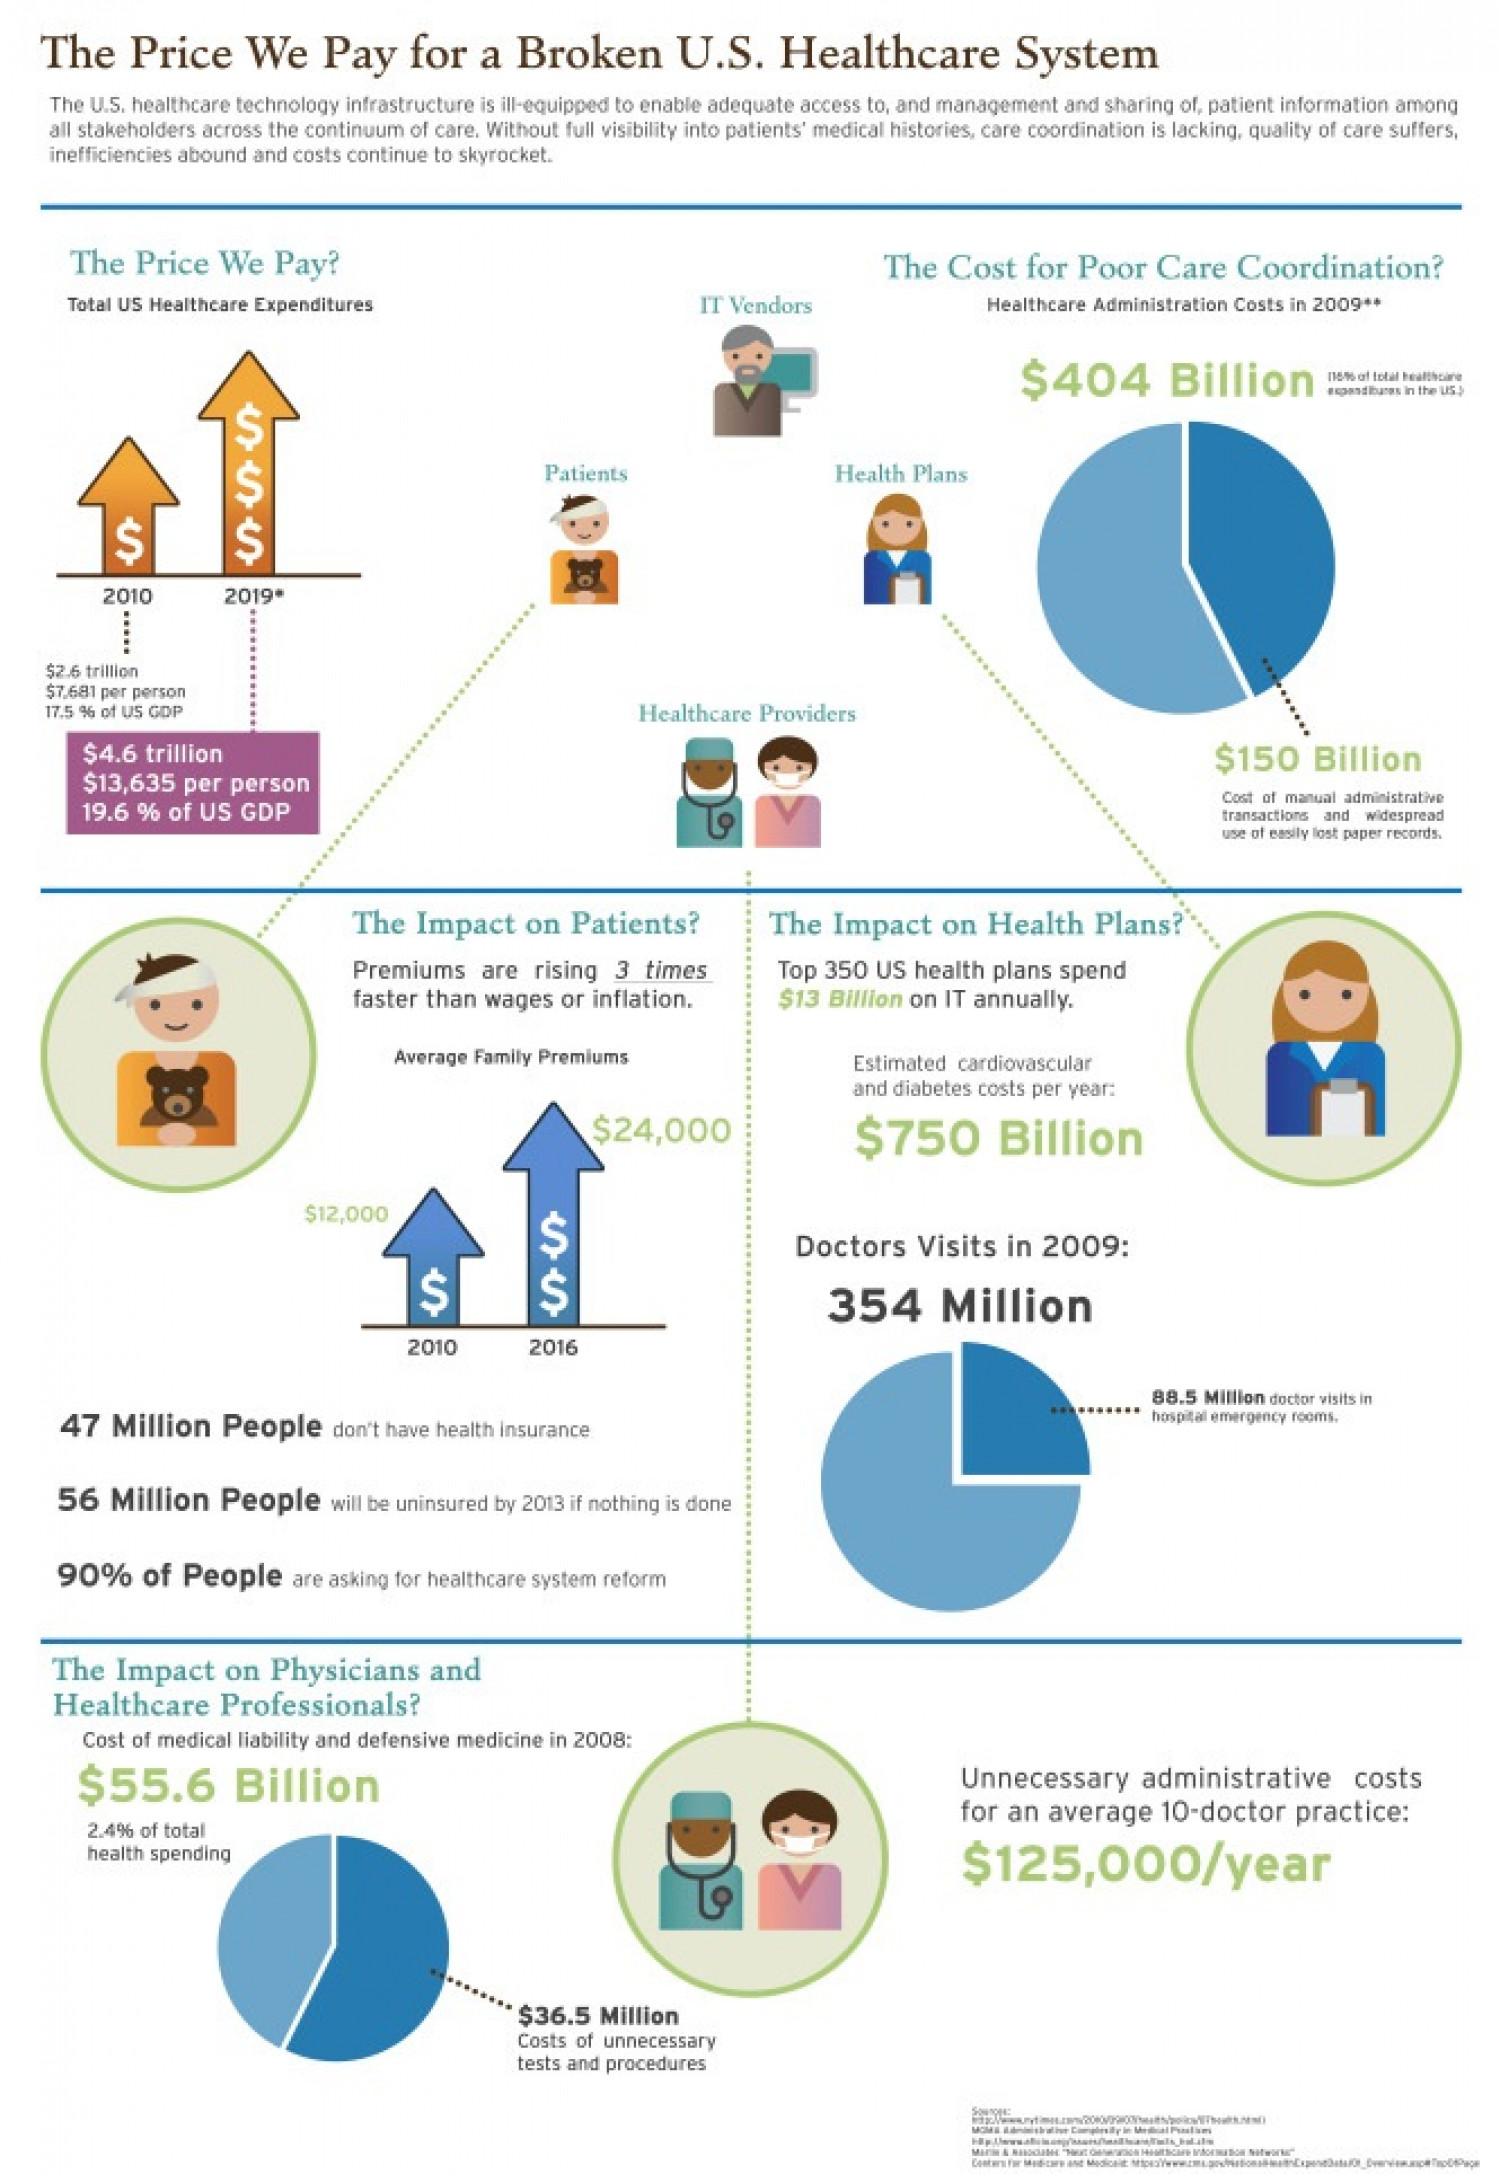 How Patient Information Management is Affecting Care Coordination  Infographic